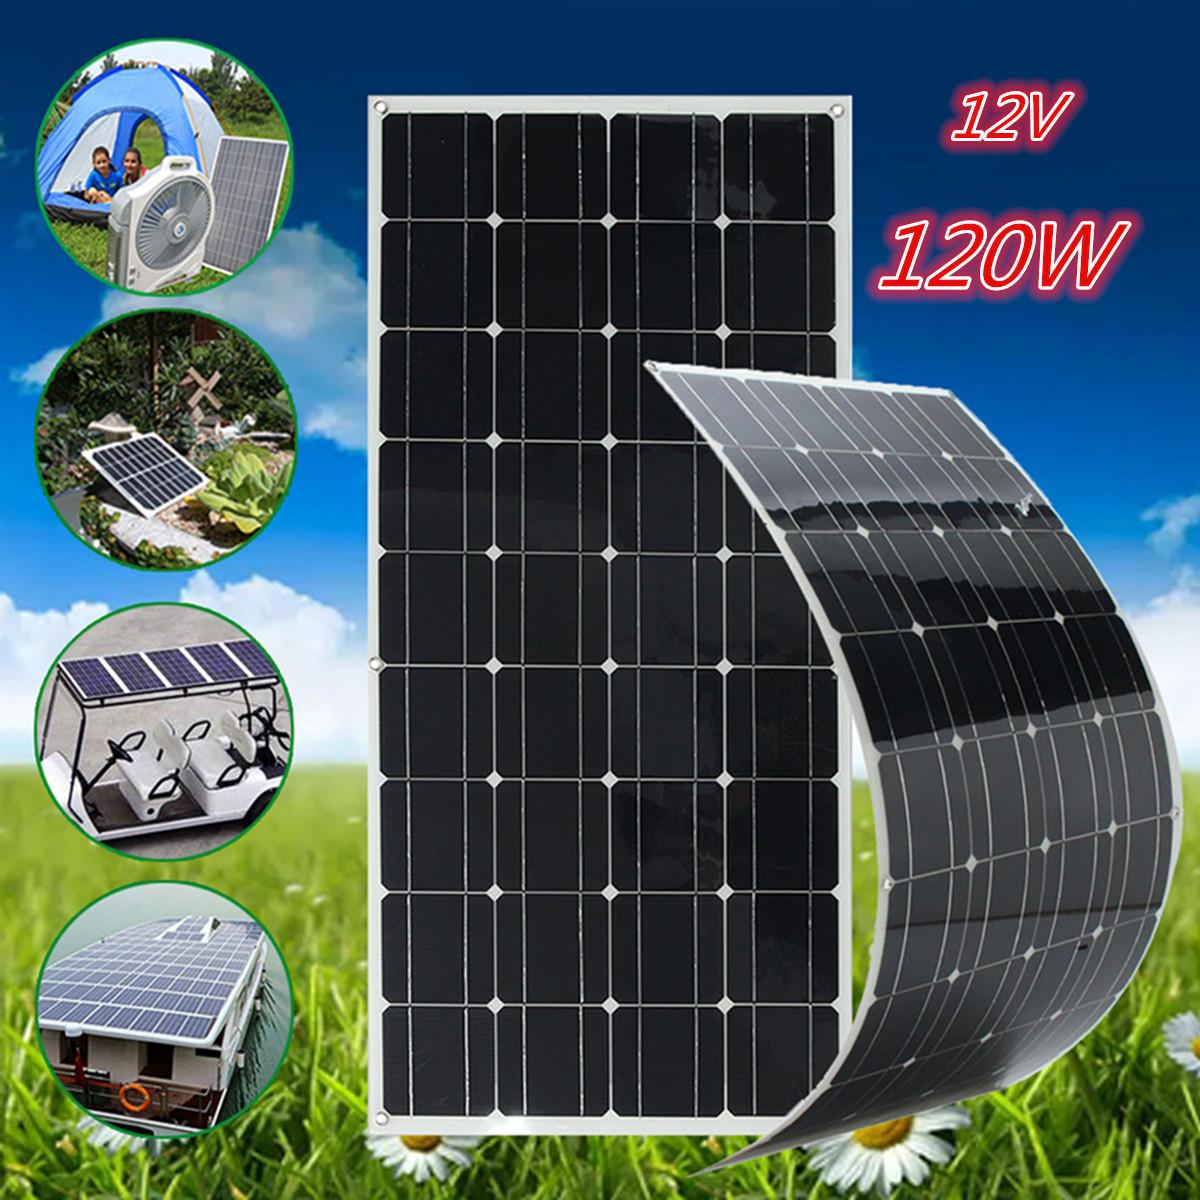 KINCO 2Pcs/set 12V/120W Semi-Flexible Solar Panel Monocrystalline Silicon Solar System Power Supply For Car Battery +1.5m Cable